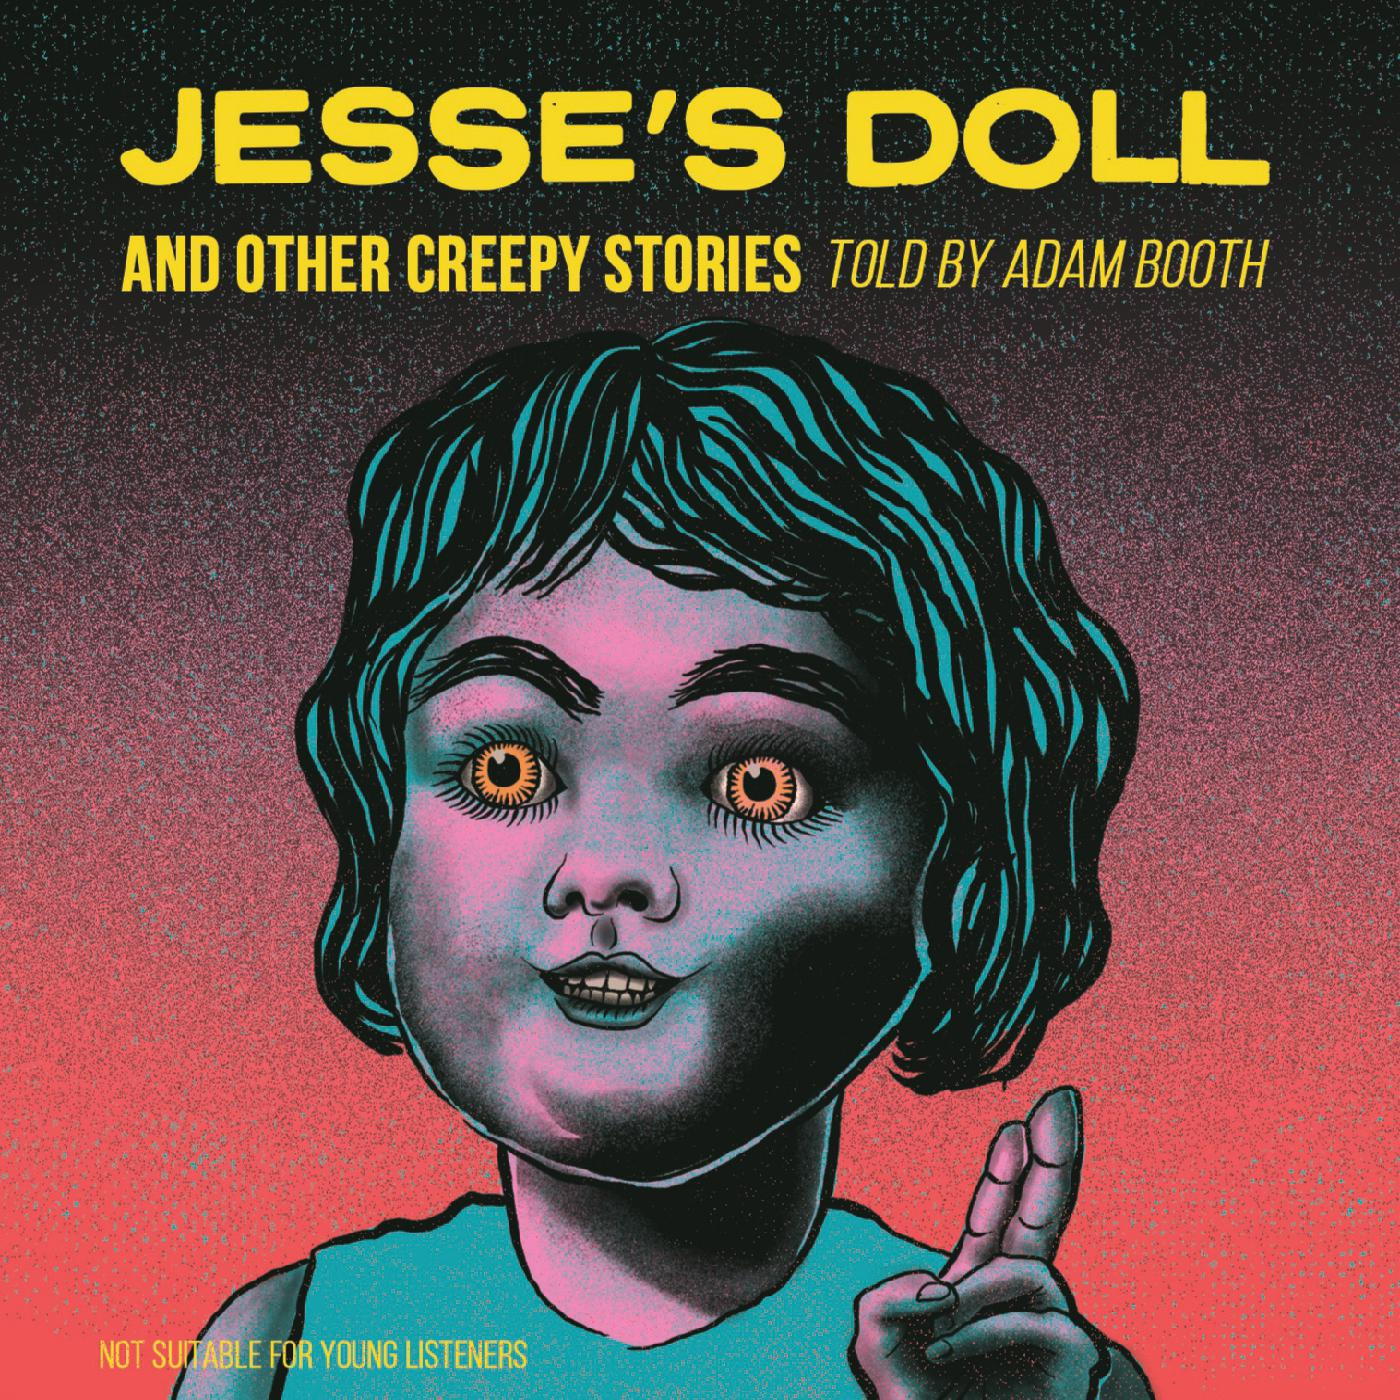 Visit Adam's  online shop  to purchase your copy of Jesse's Doll and Other Creepy Stories